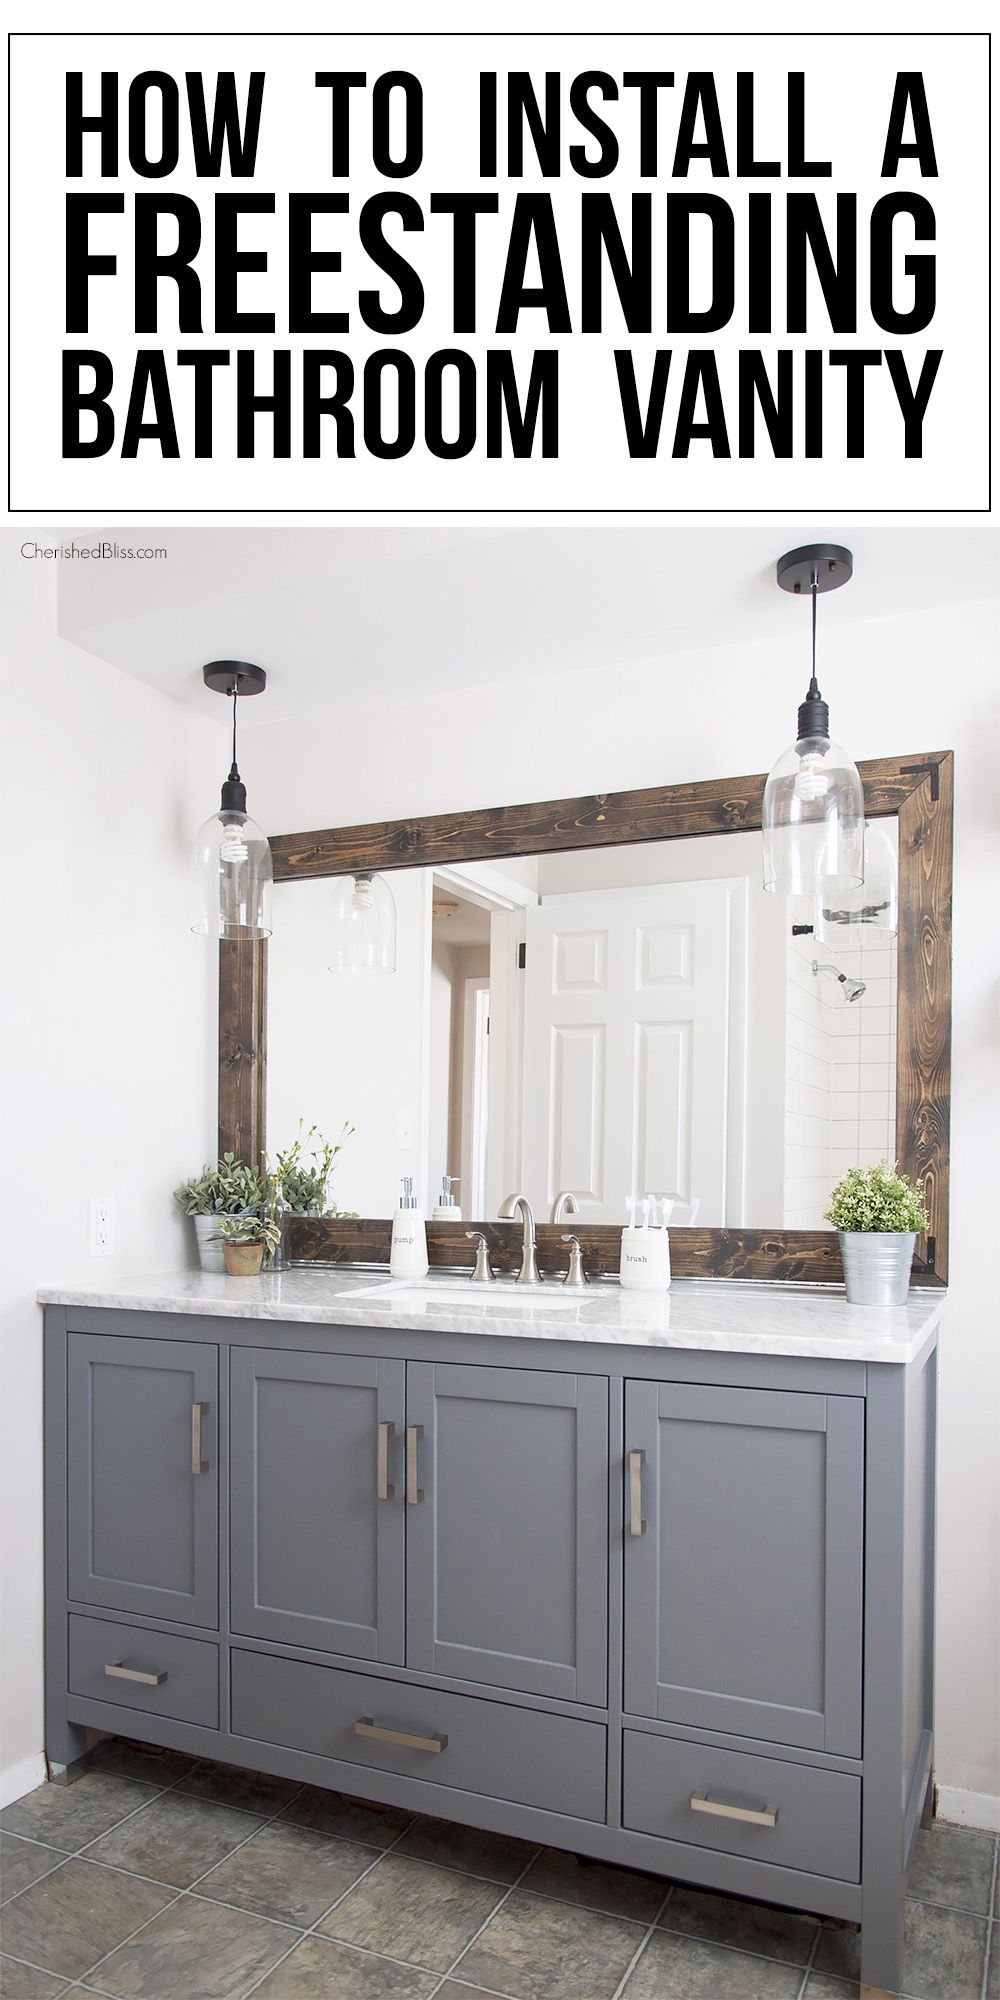 How to install a freestanding bathroom vanity diy home - How to install a bathroom vanity ...